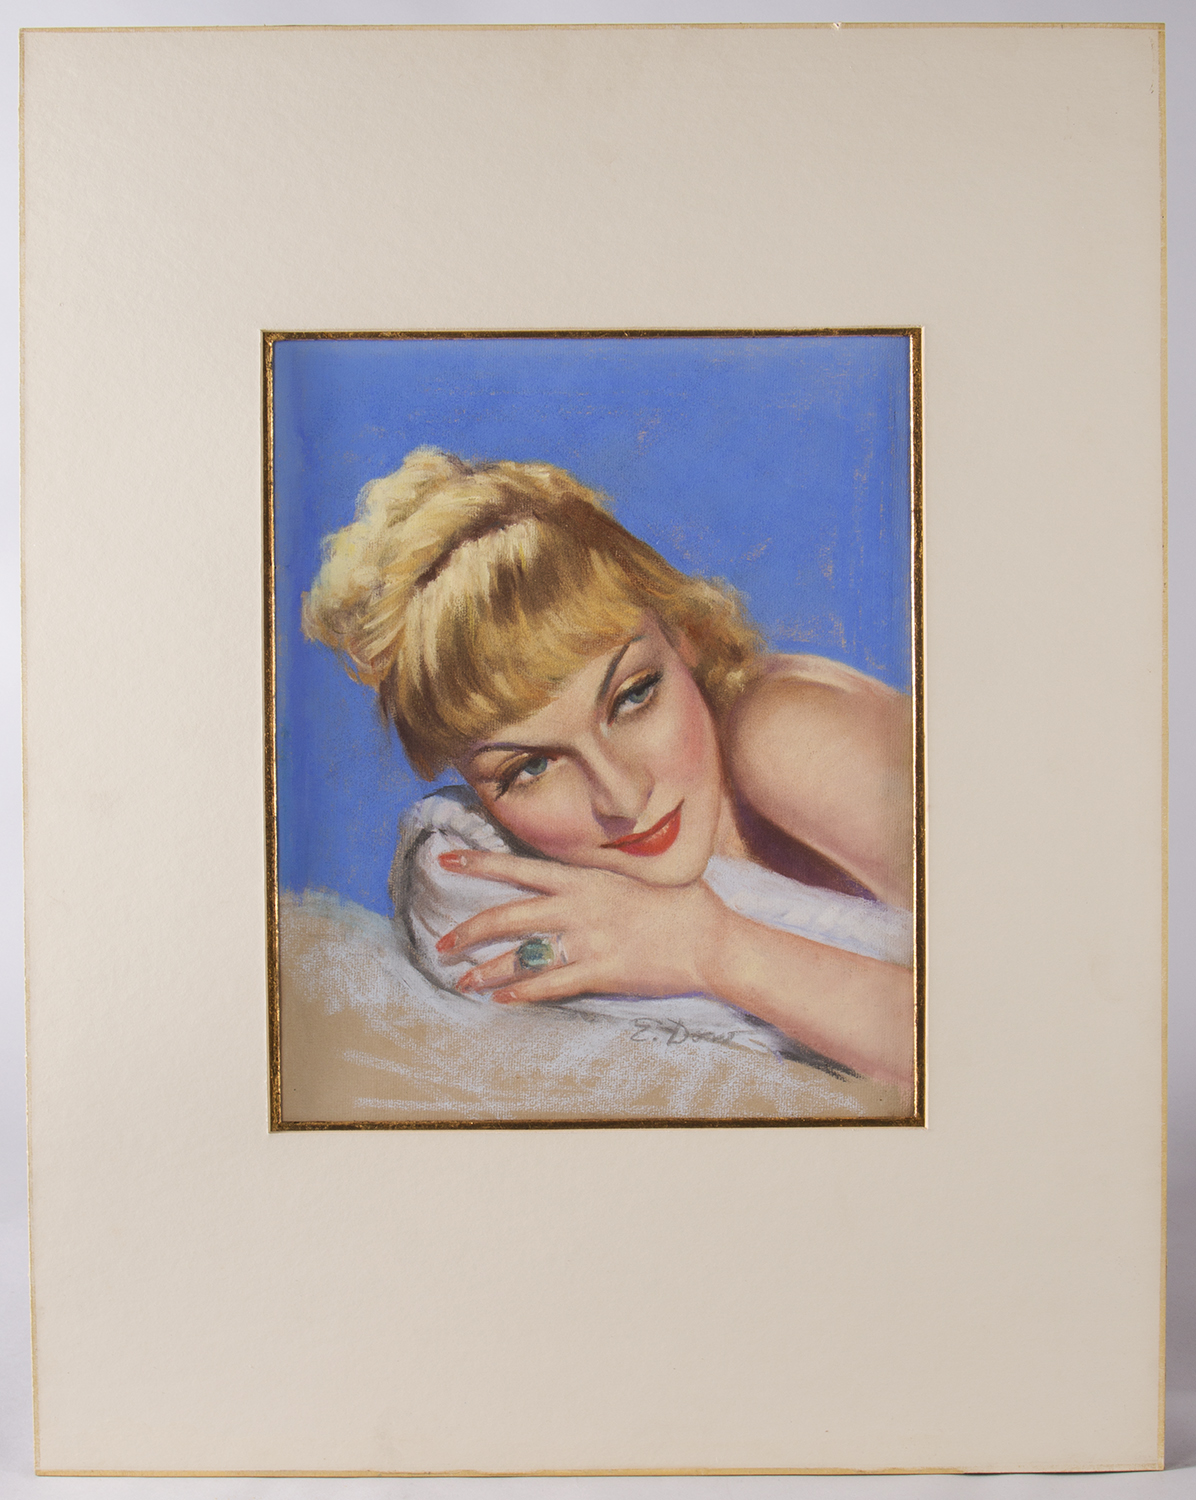 1933 pastel of Carole Lombard, matted